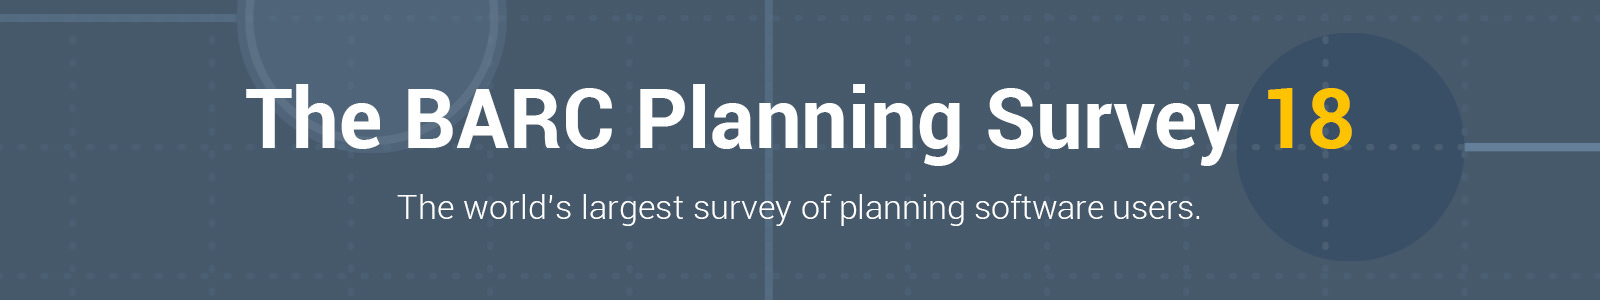 BARC – The Planning Survey 2018